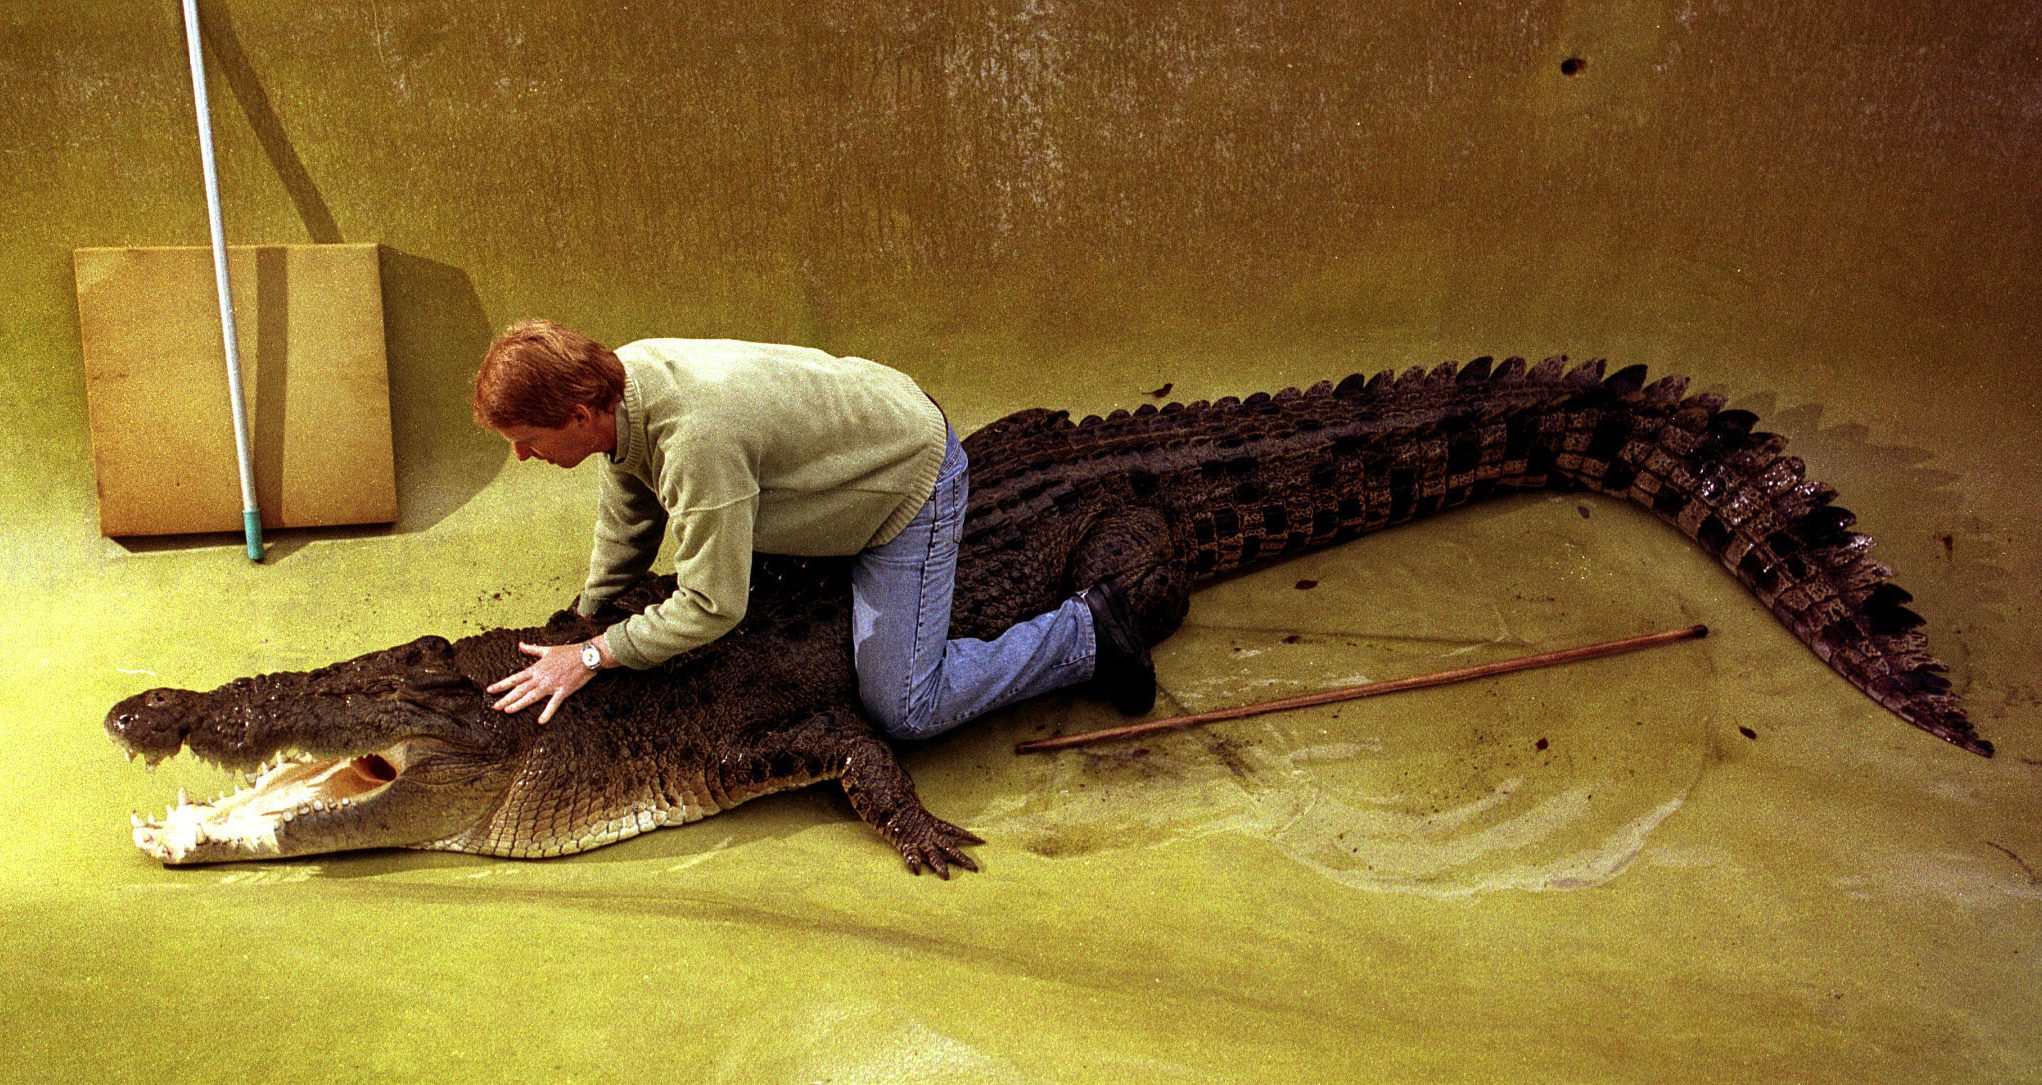 Owner of Australia's oldest and largest reptile park, John Weigel, holds a 5-metre (16 feet) long sa..